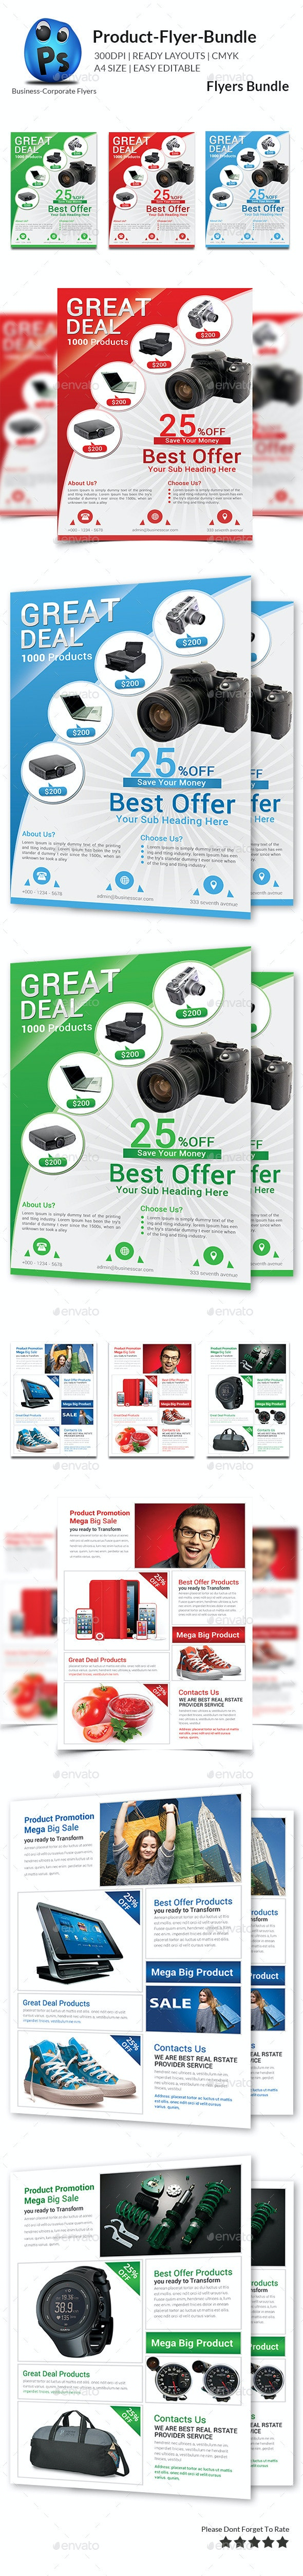 Product Promotion Flyer Bundle - Corporate Flyers